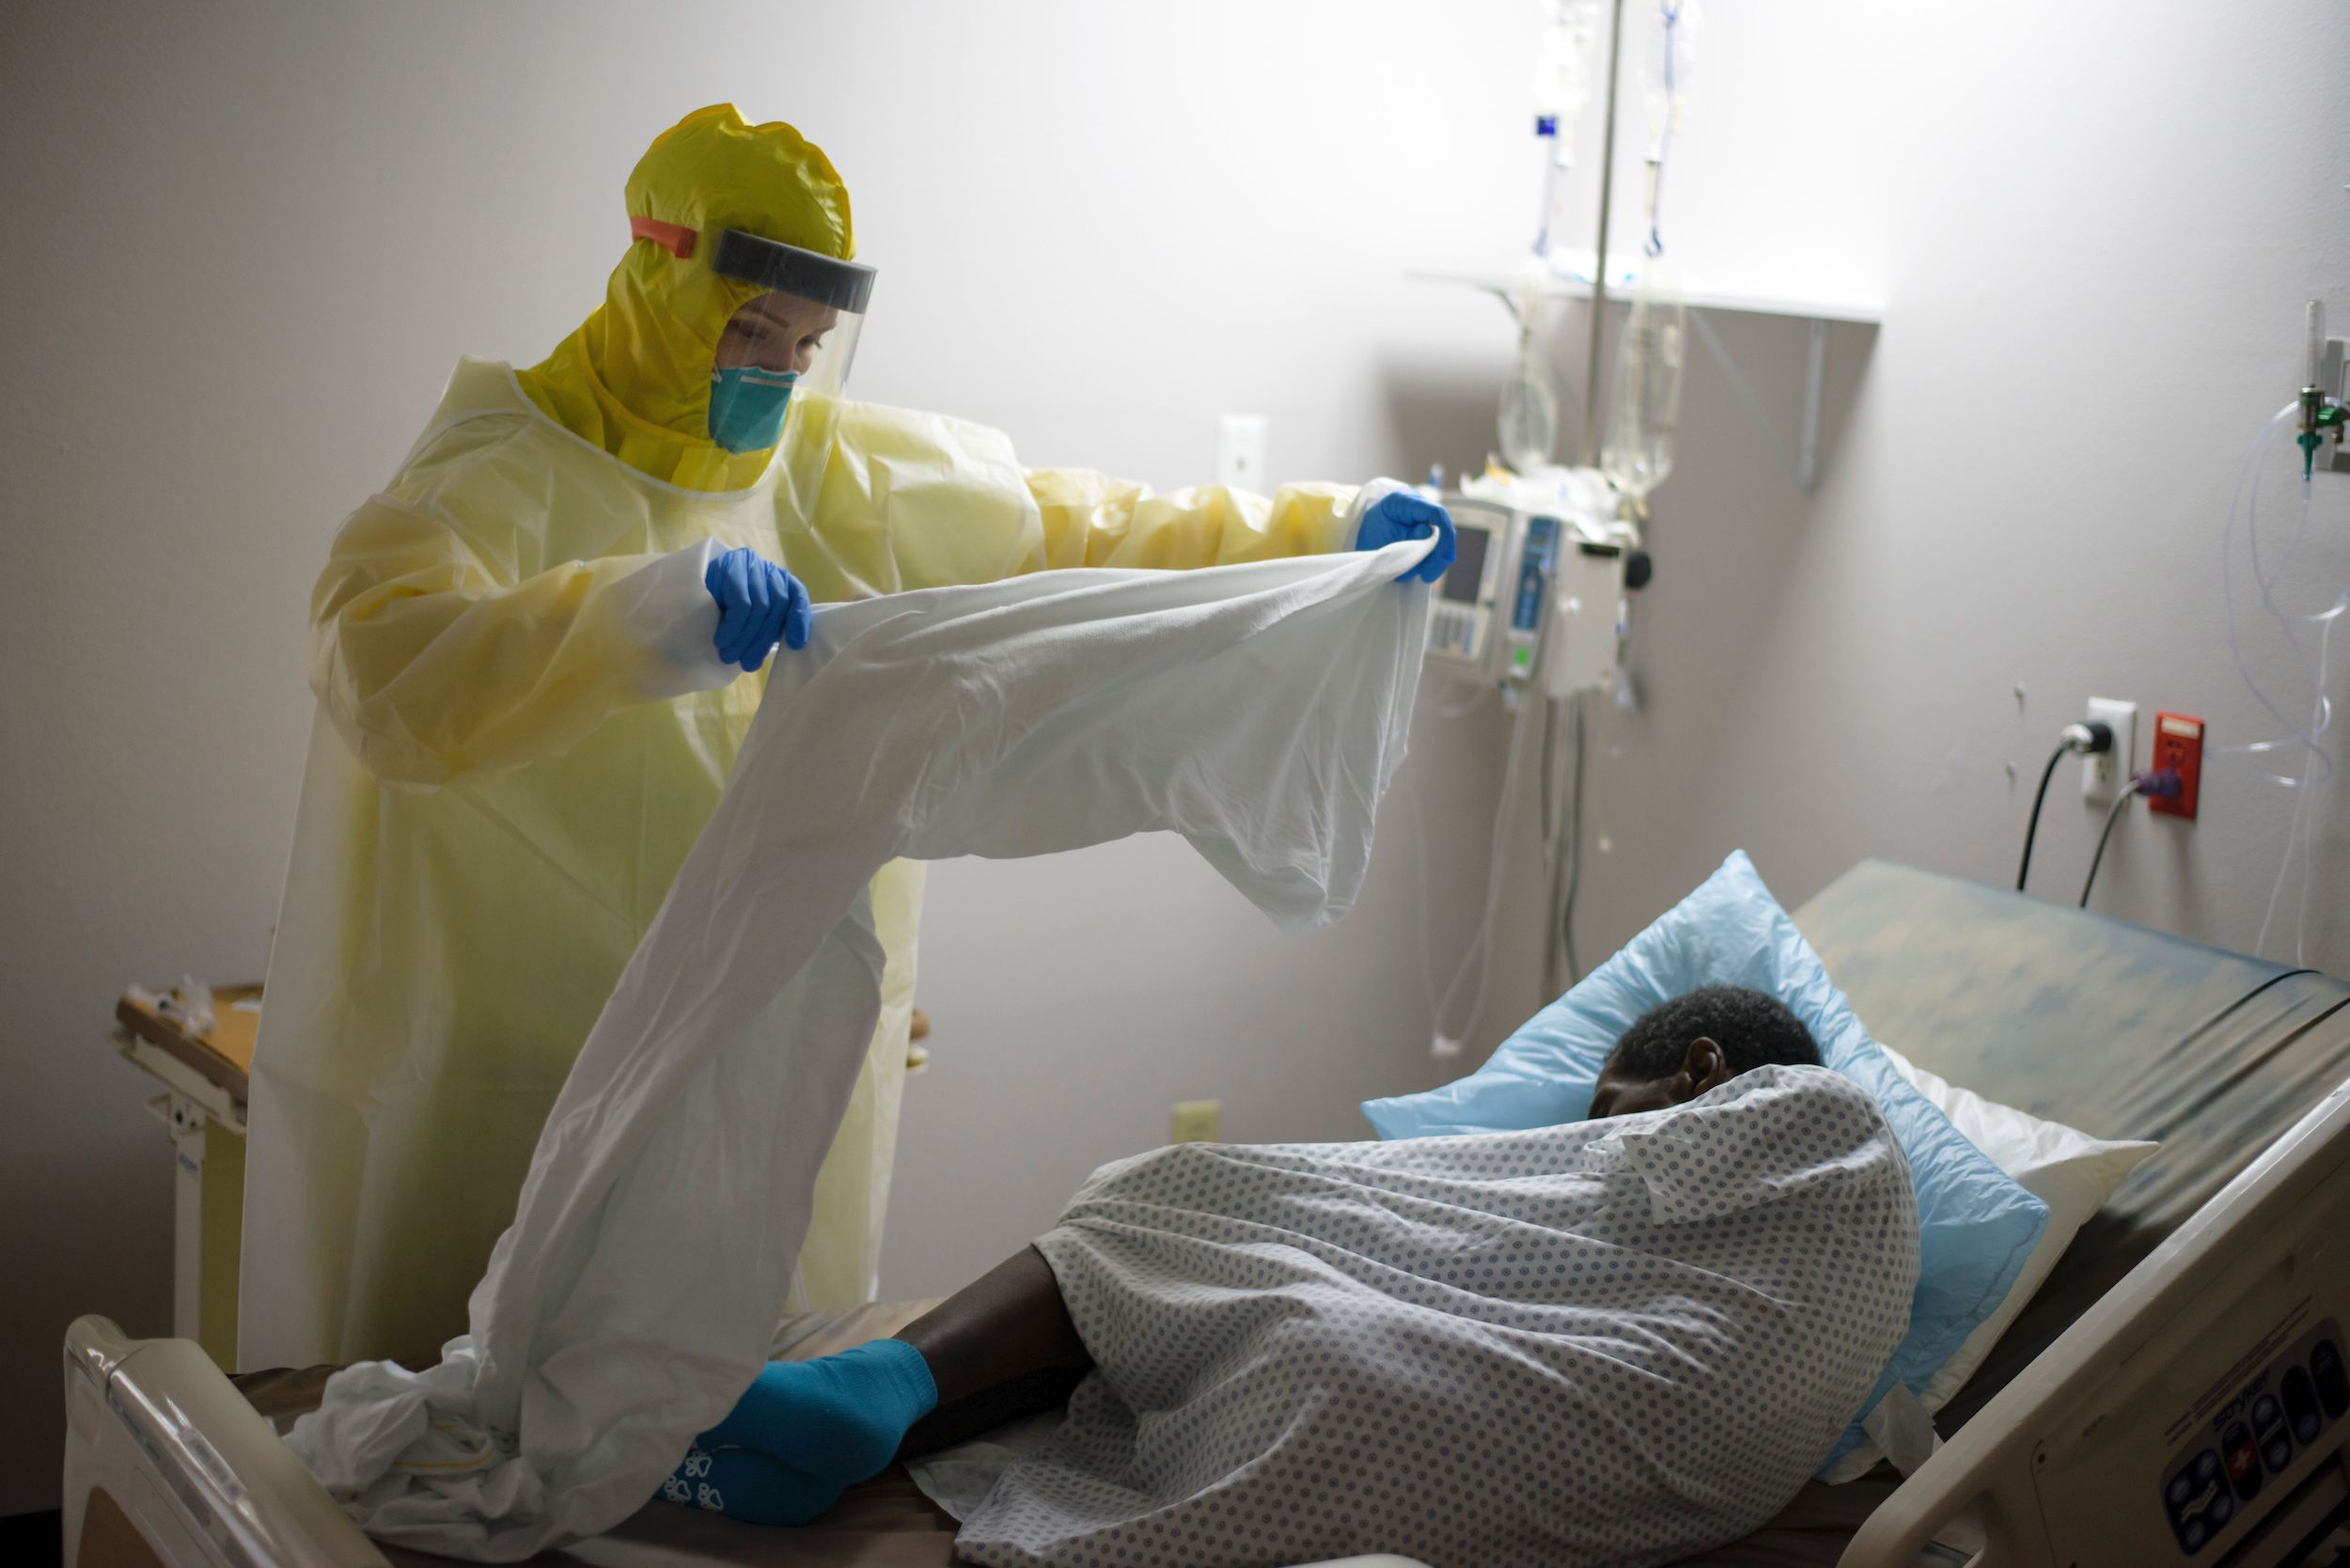 A healthcare worker tends to a patient in the Covid-19 Unit at United Memorial Medical Center in Houston, Texas, on July 2, 2020.